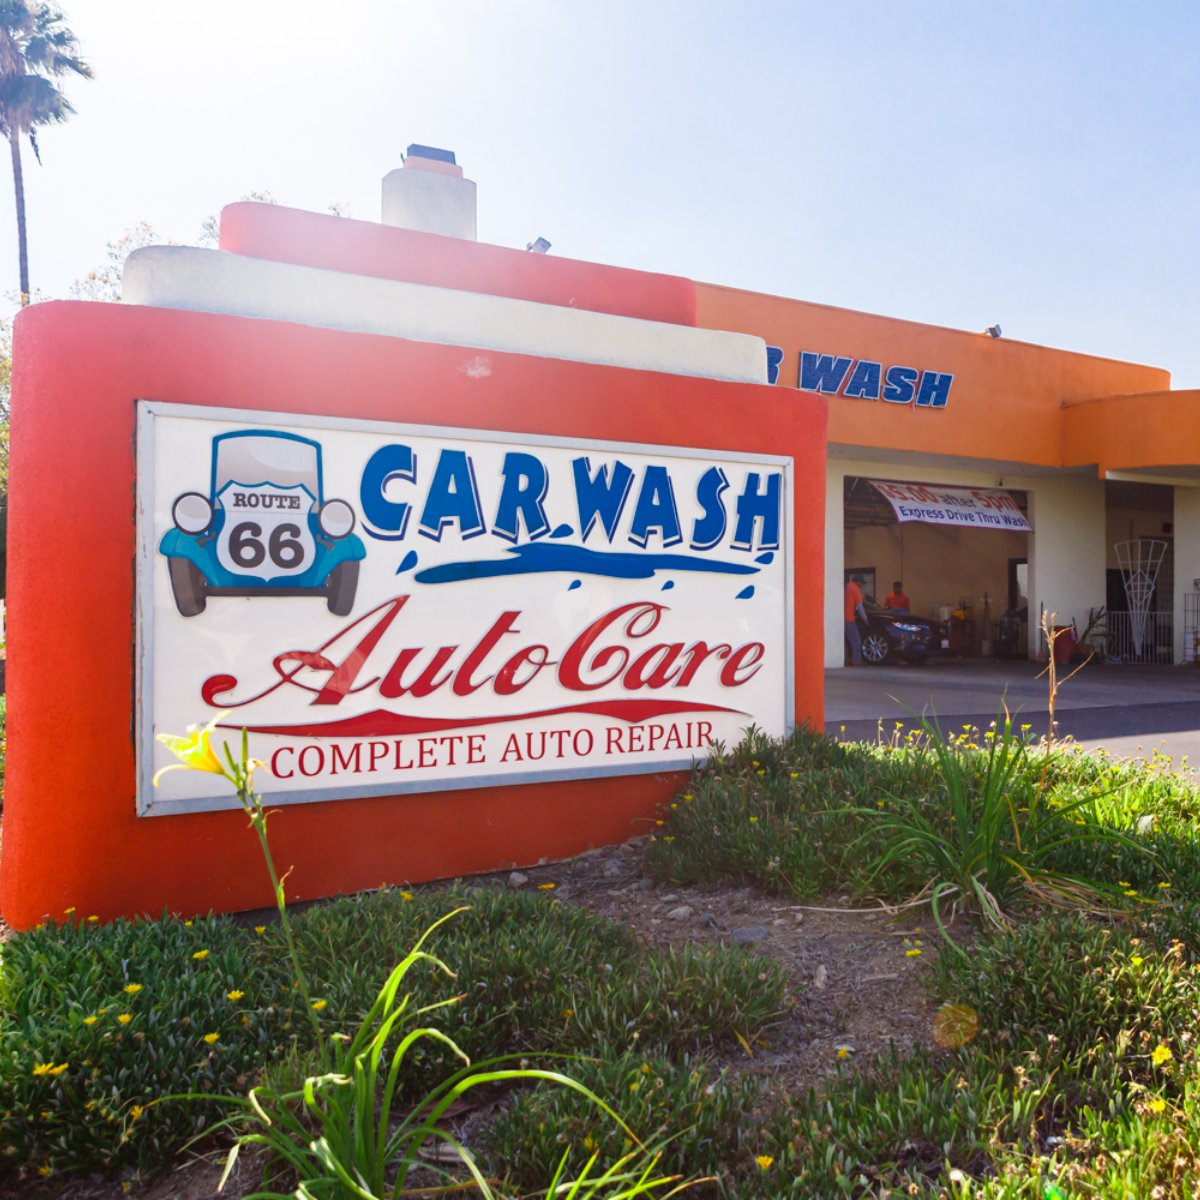 route 66 car wash (@route66_carwash) | twitter